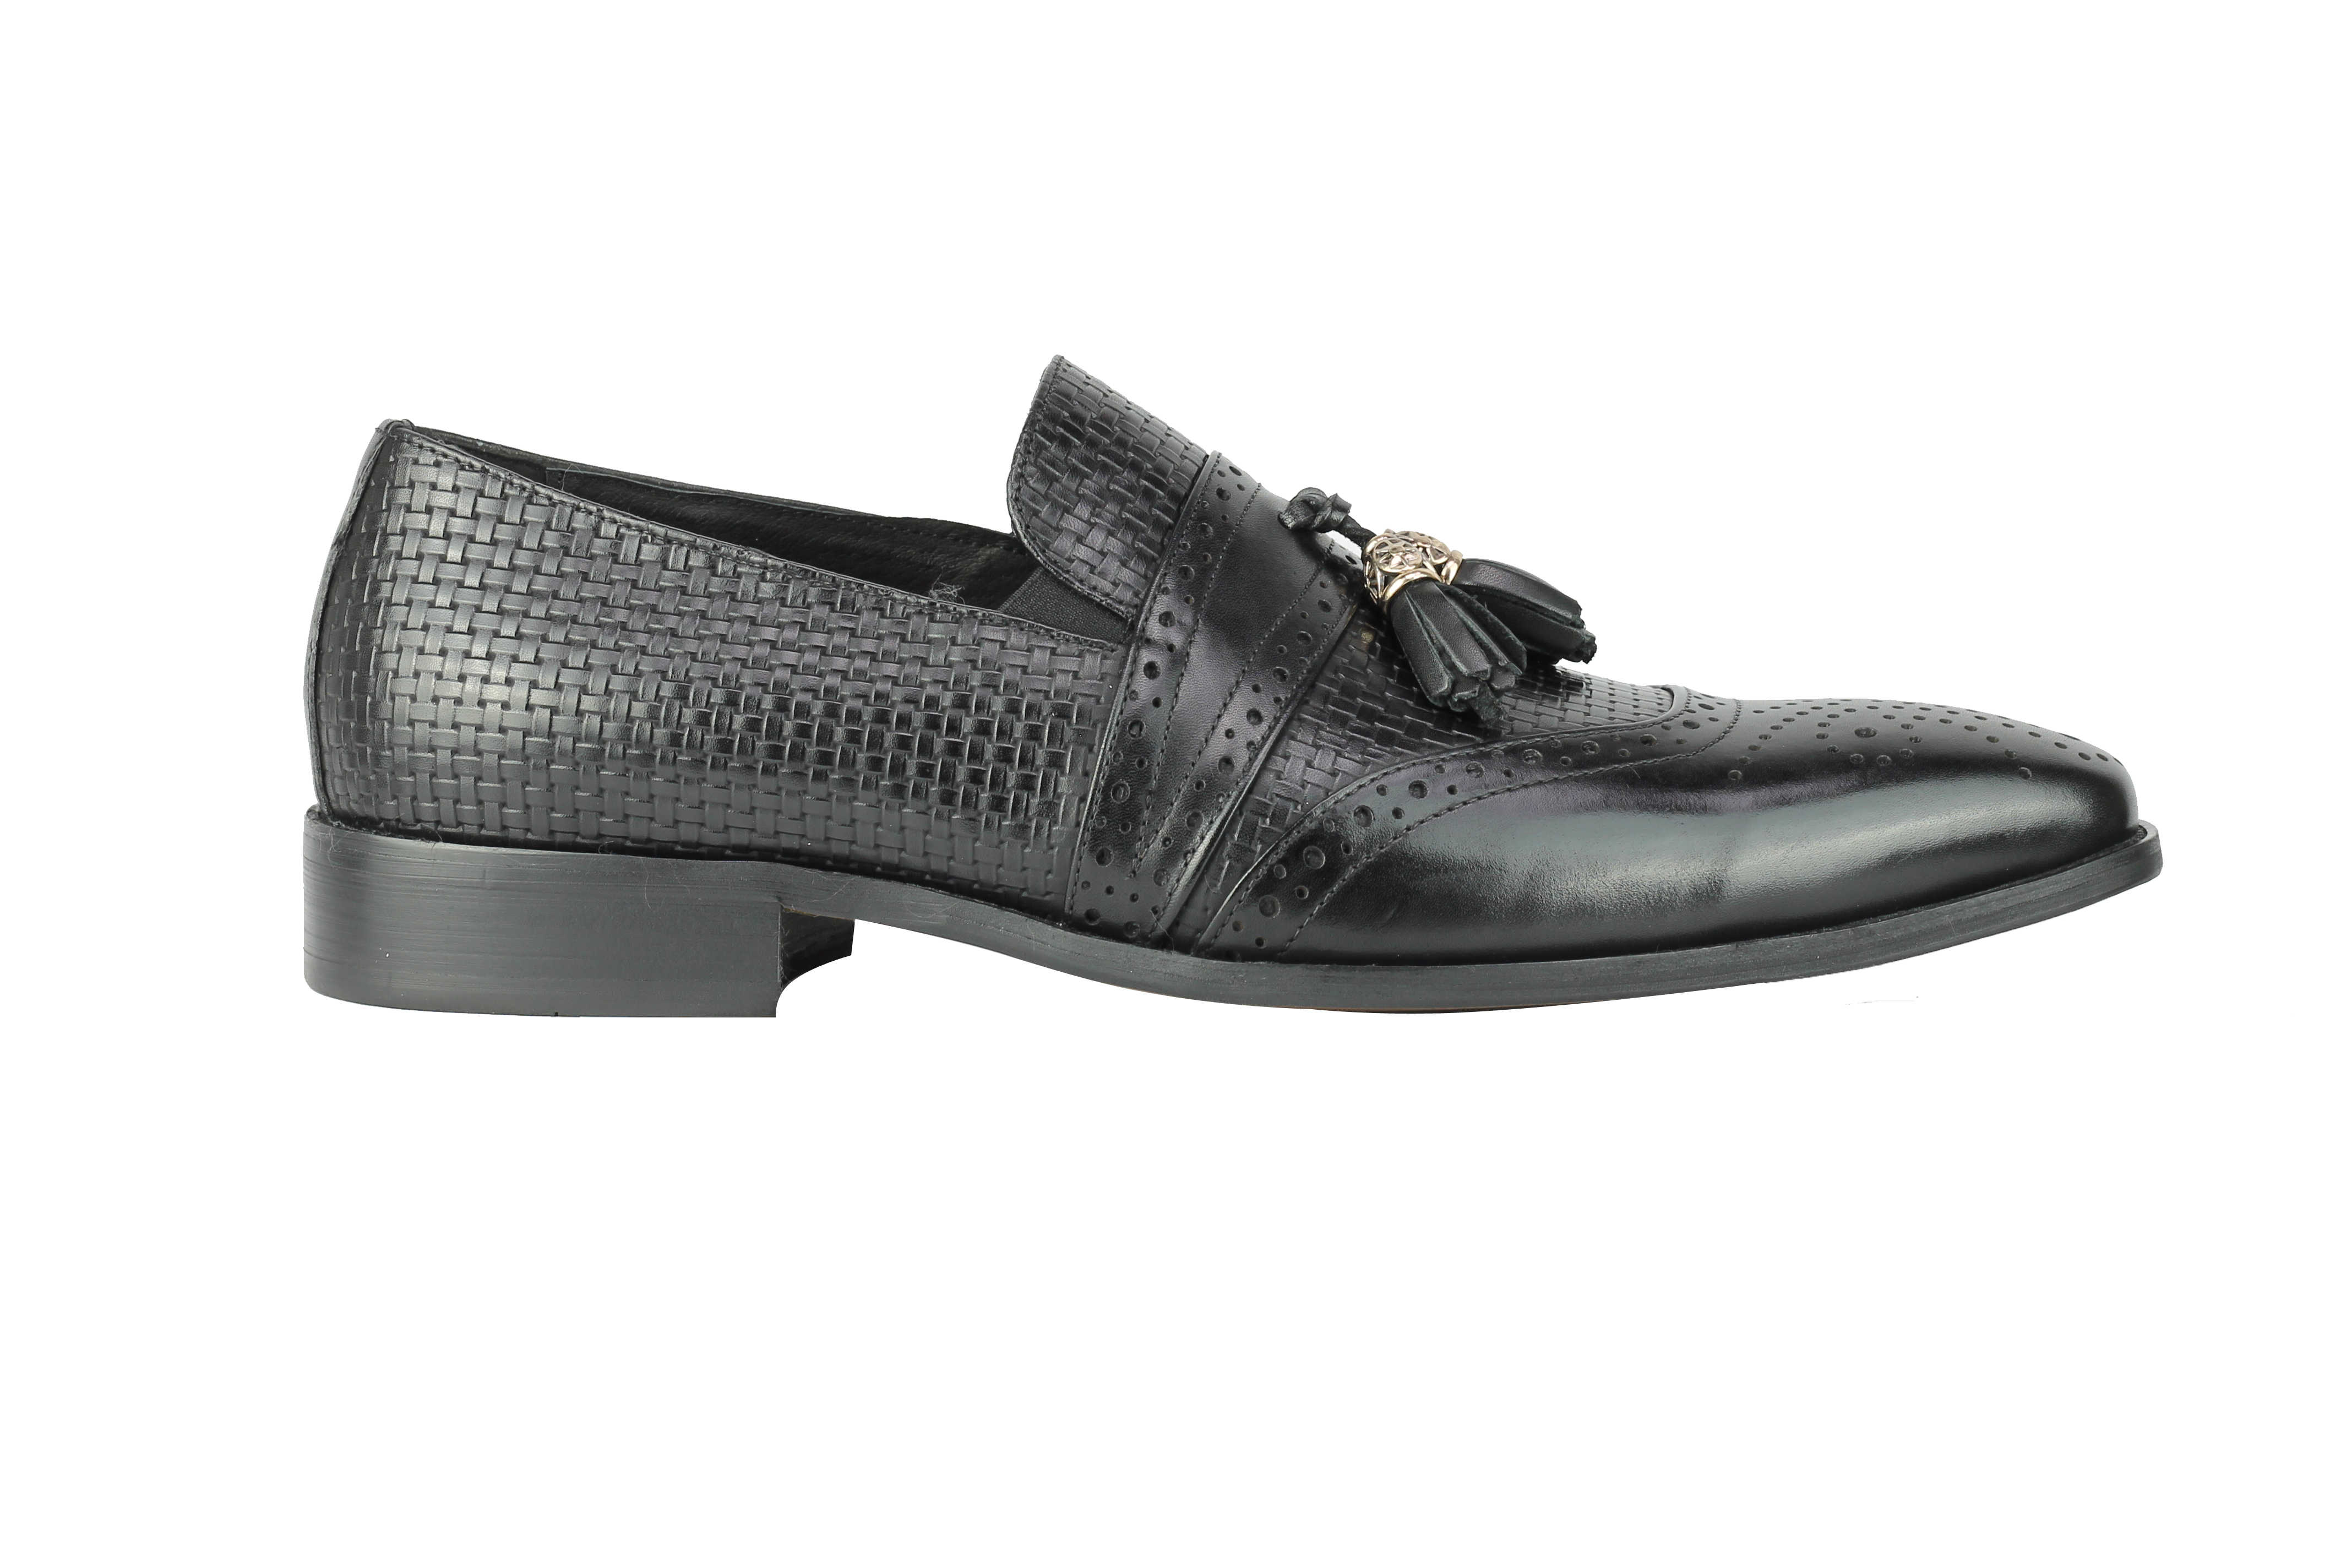 Mens-Real-Leather-Slip-on-Tassel-Loafers-High-Detailed-Smart-Dress-Party-Shoes thumbnail 4